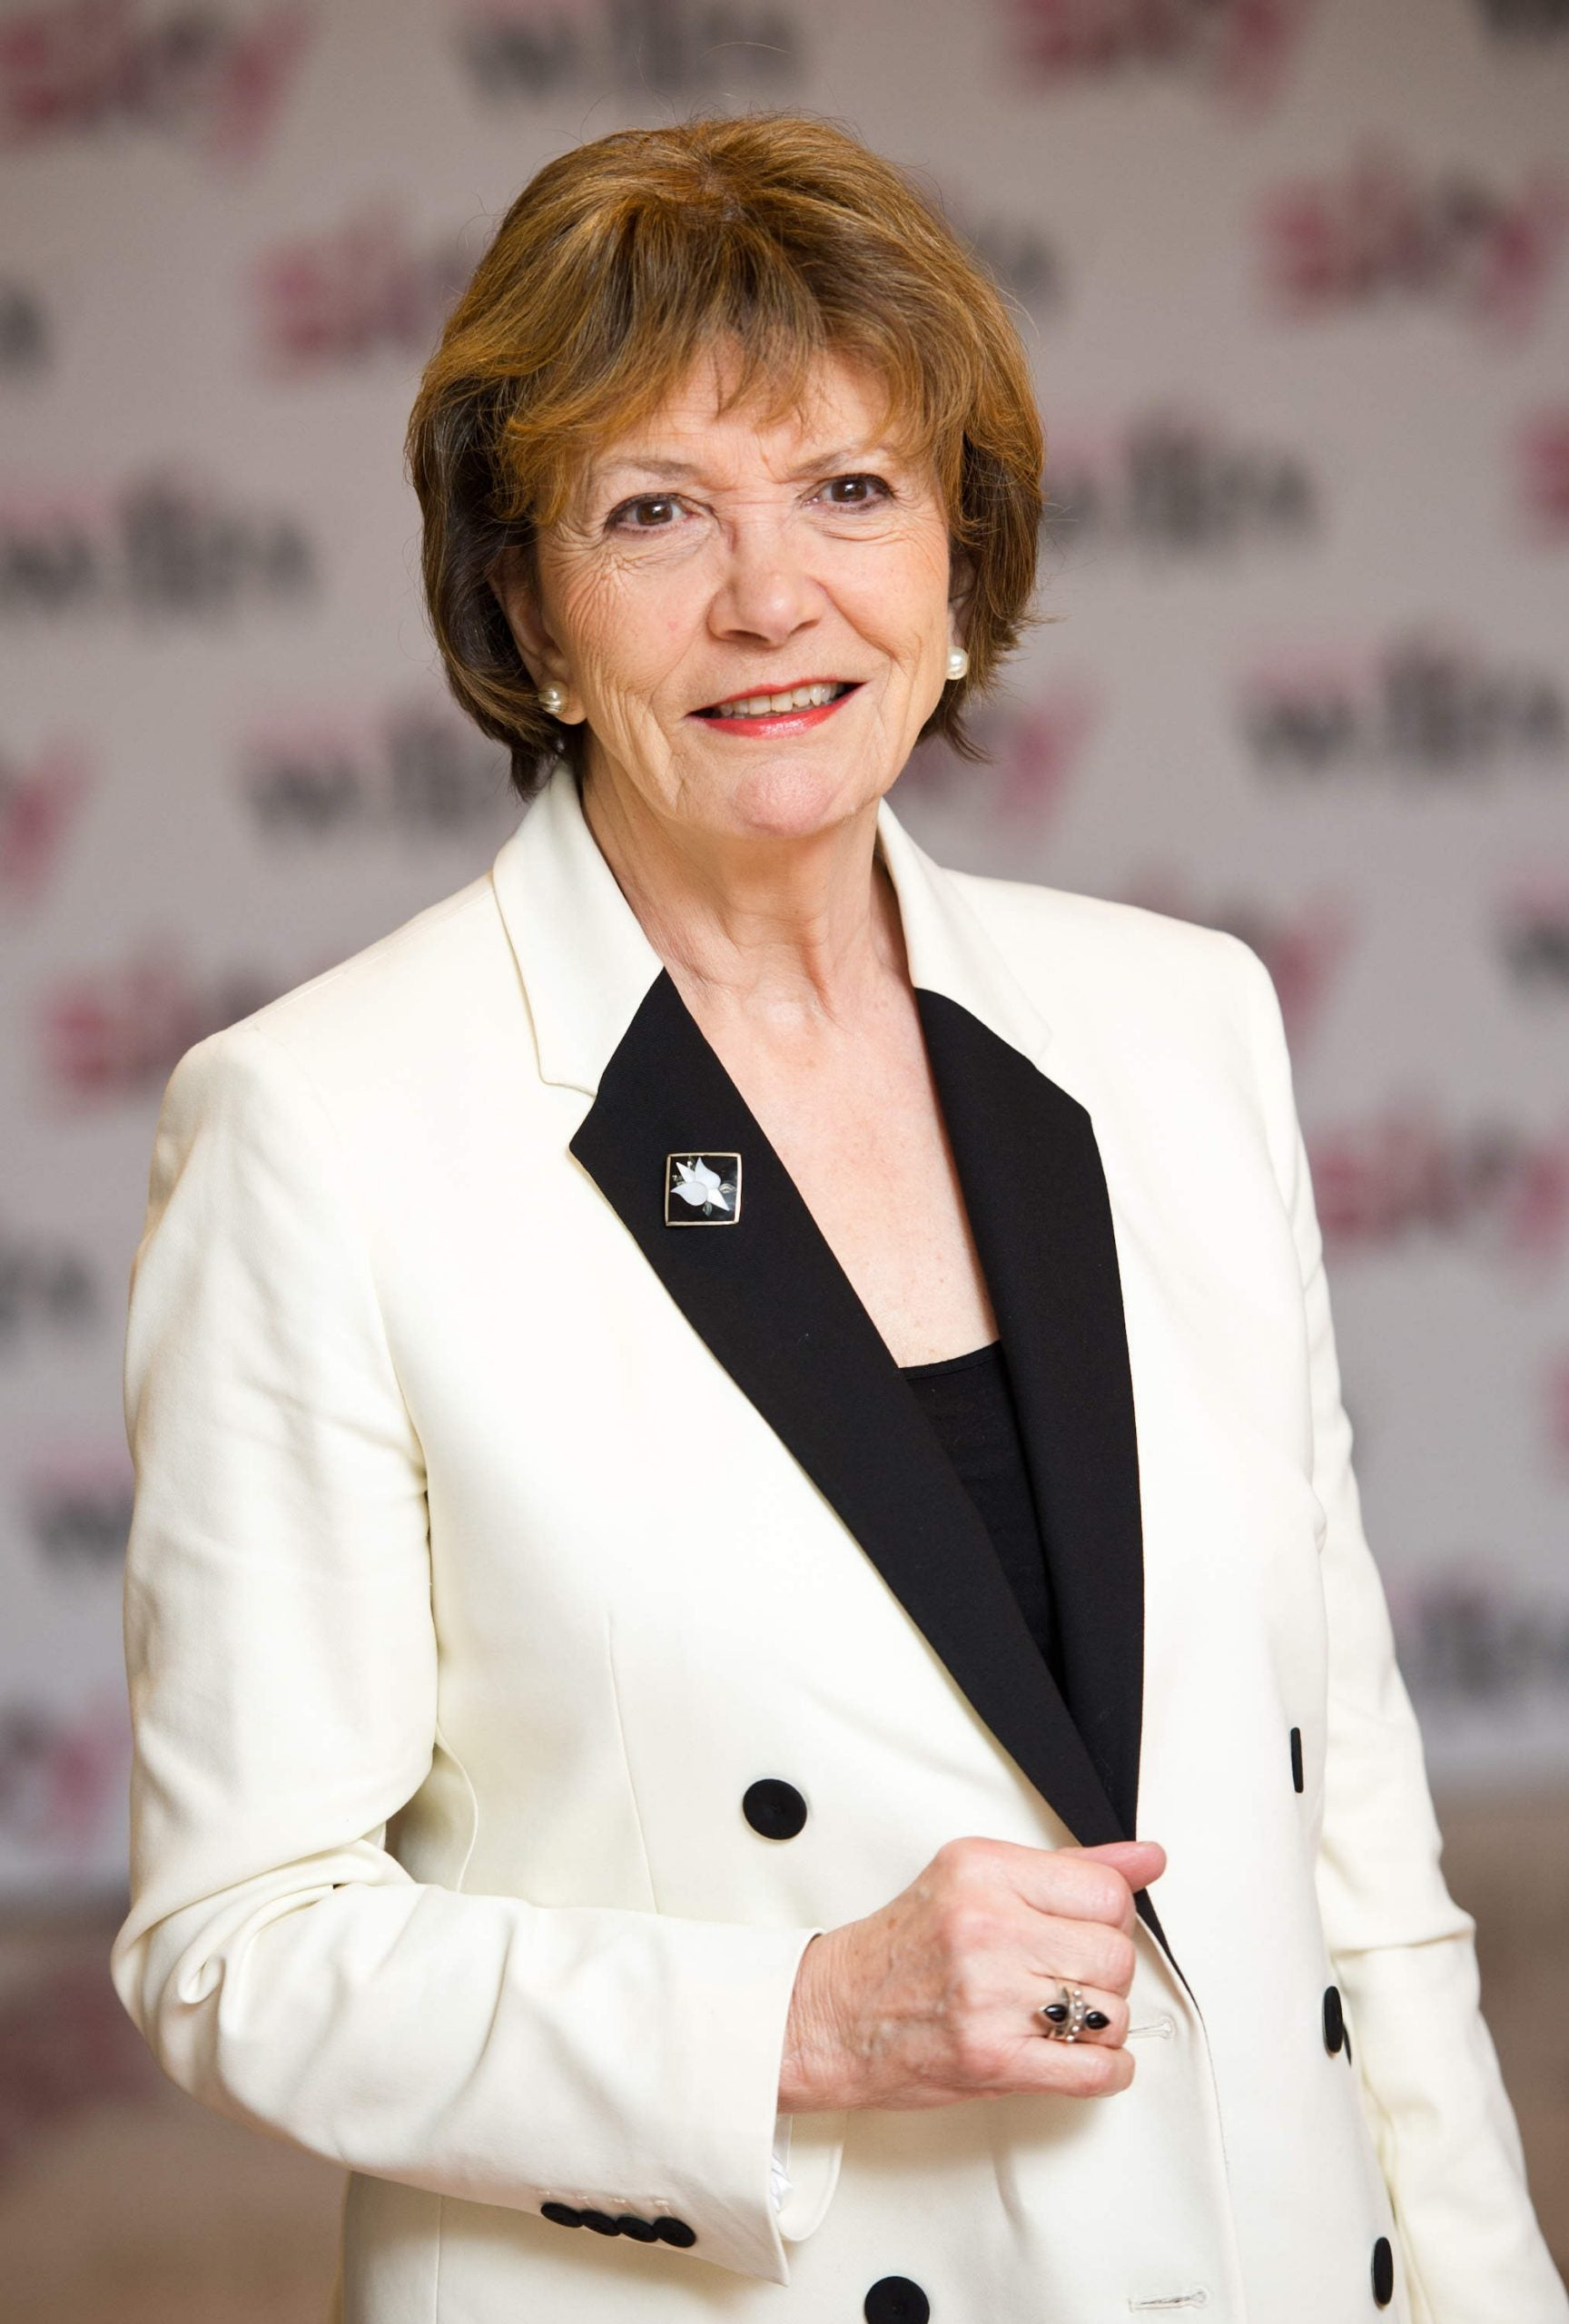 Joan Bakewell's Diary: Talking to centenarians about death